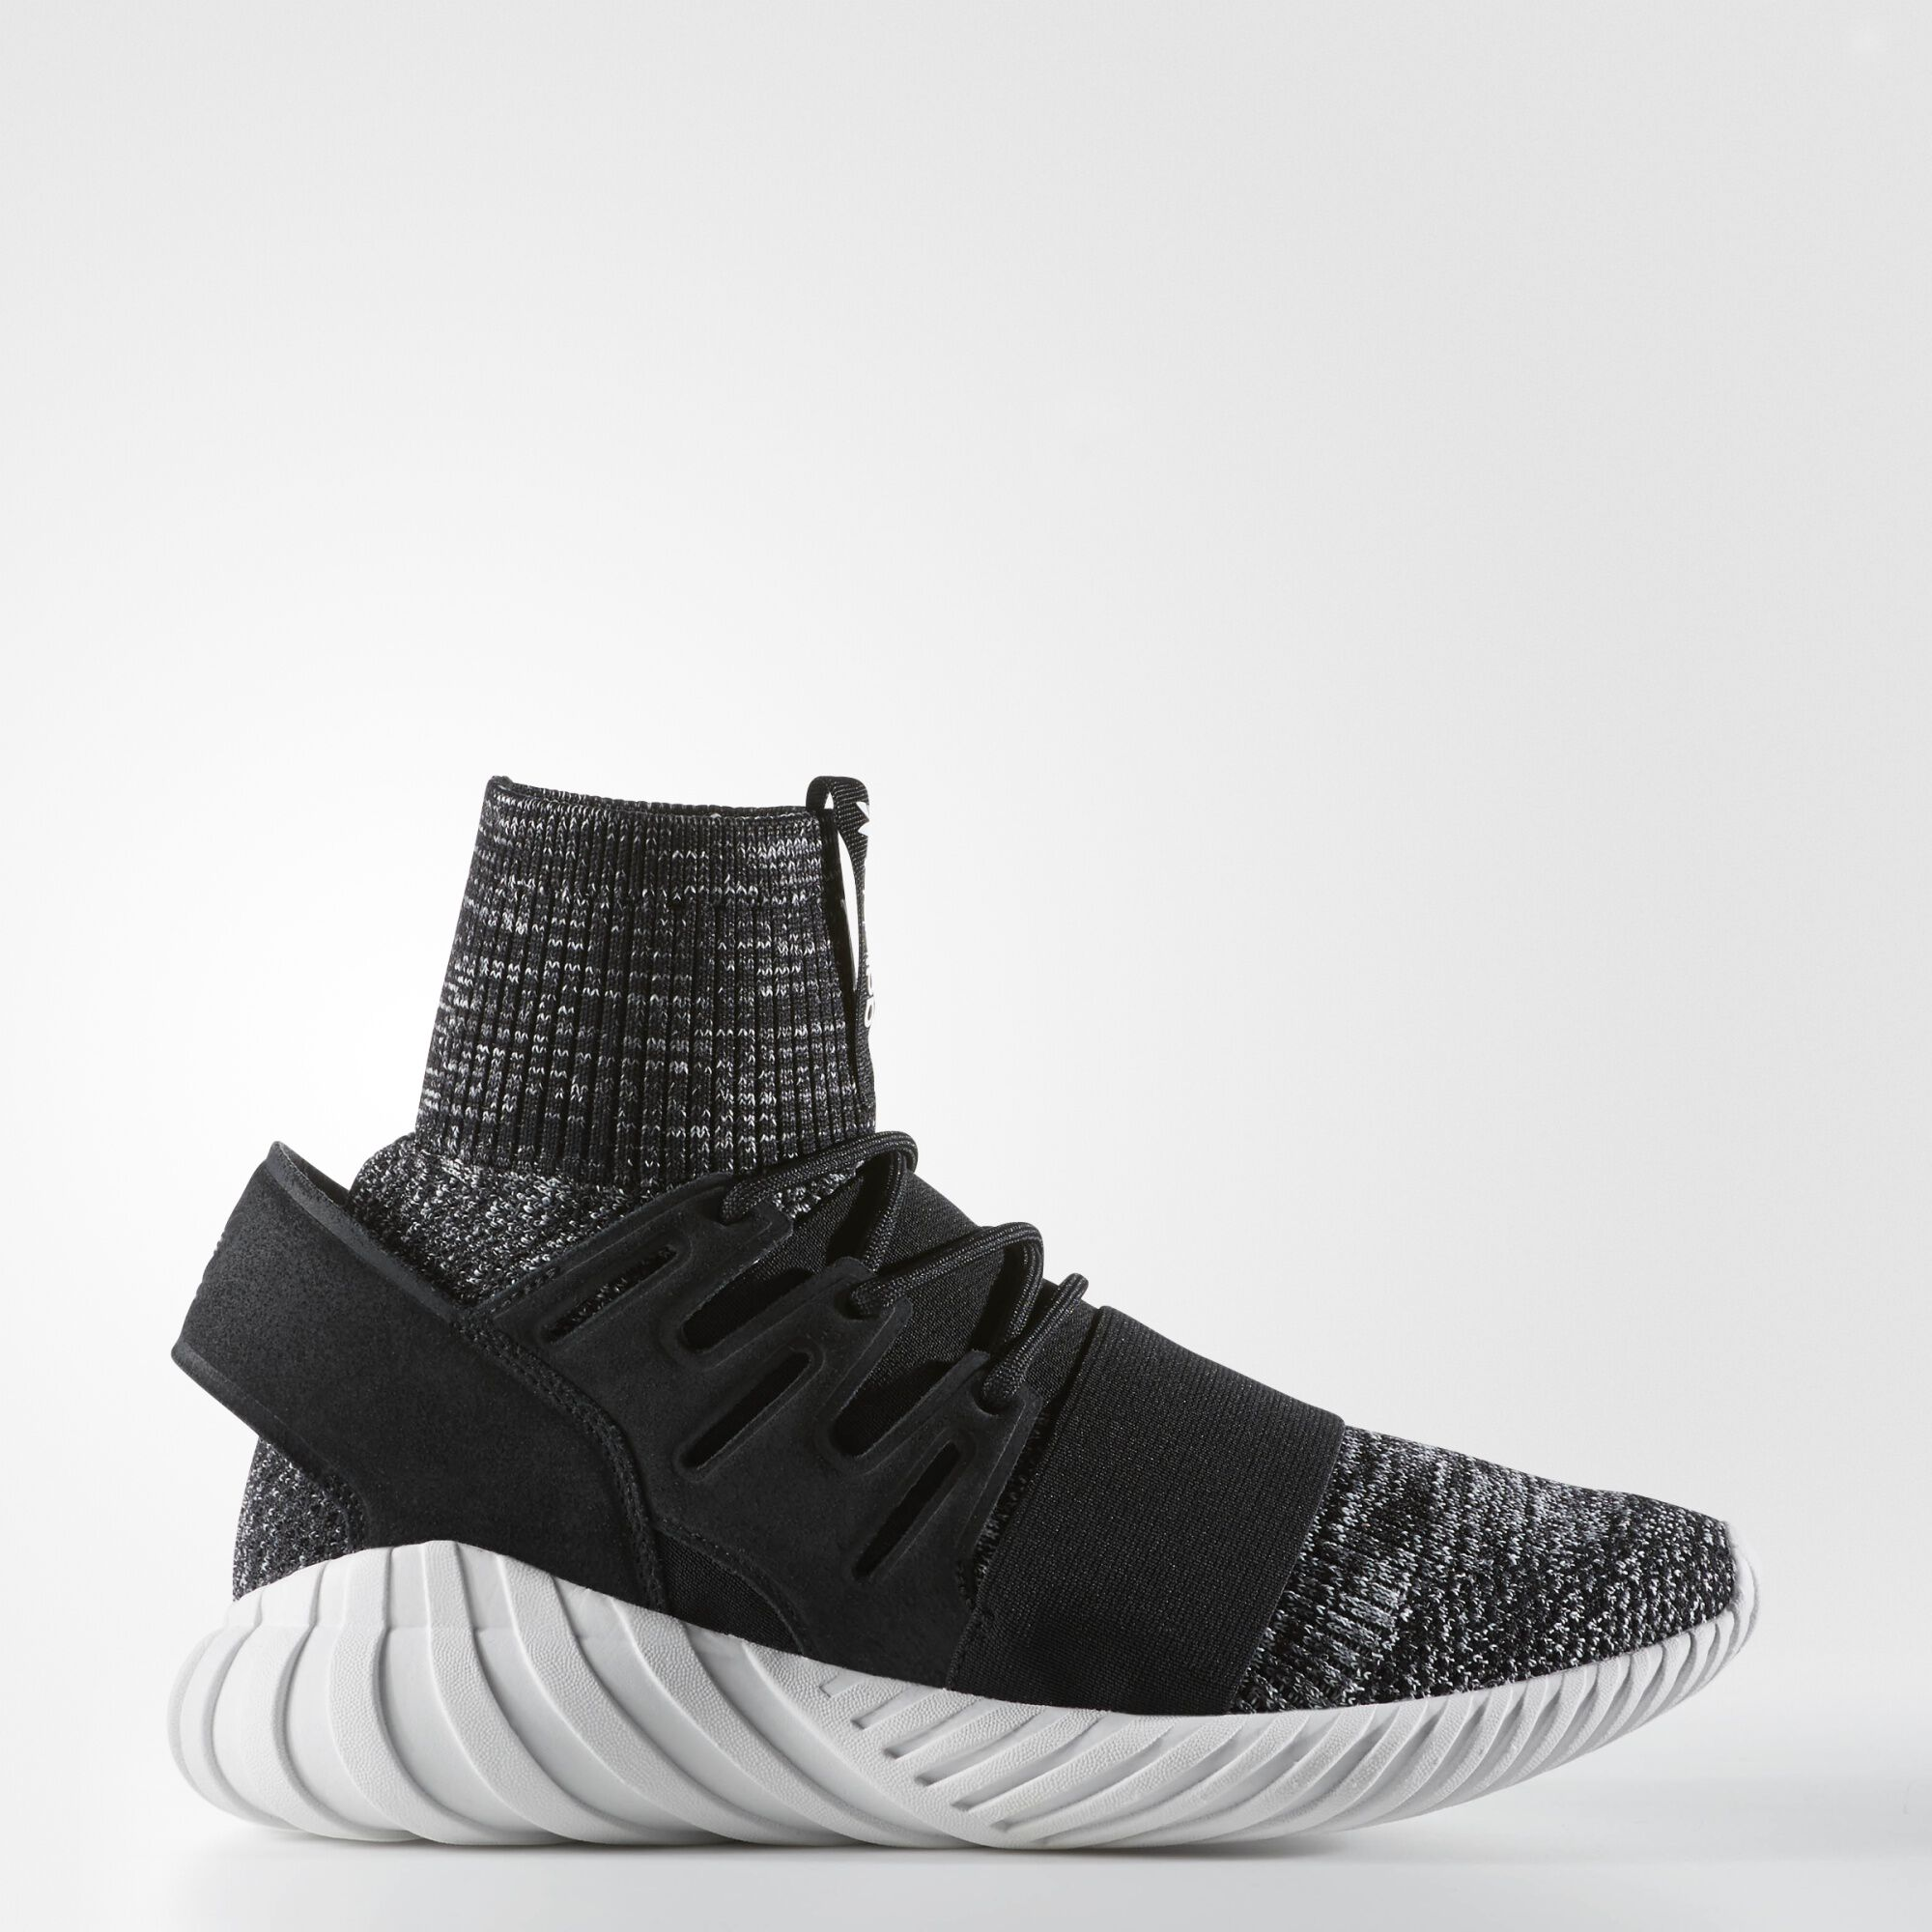 Adidas Originals Tubular Radial Men's Running Shoes Clear